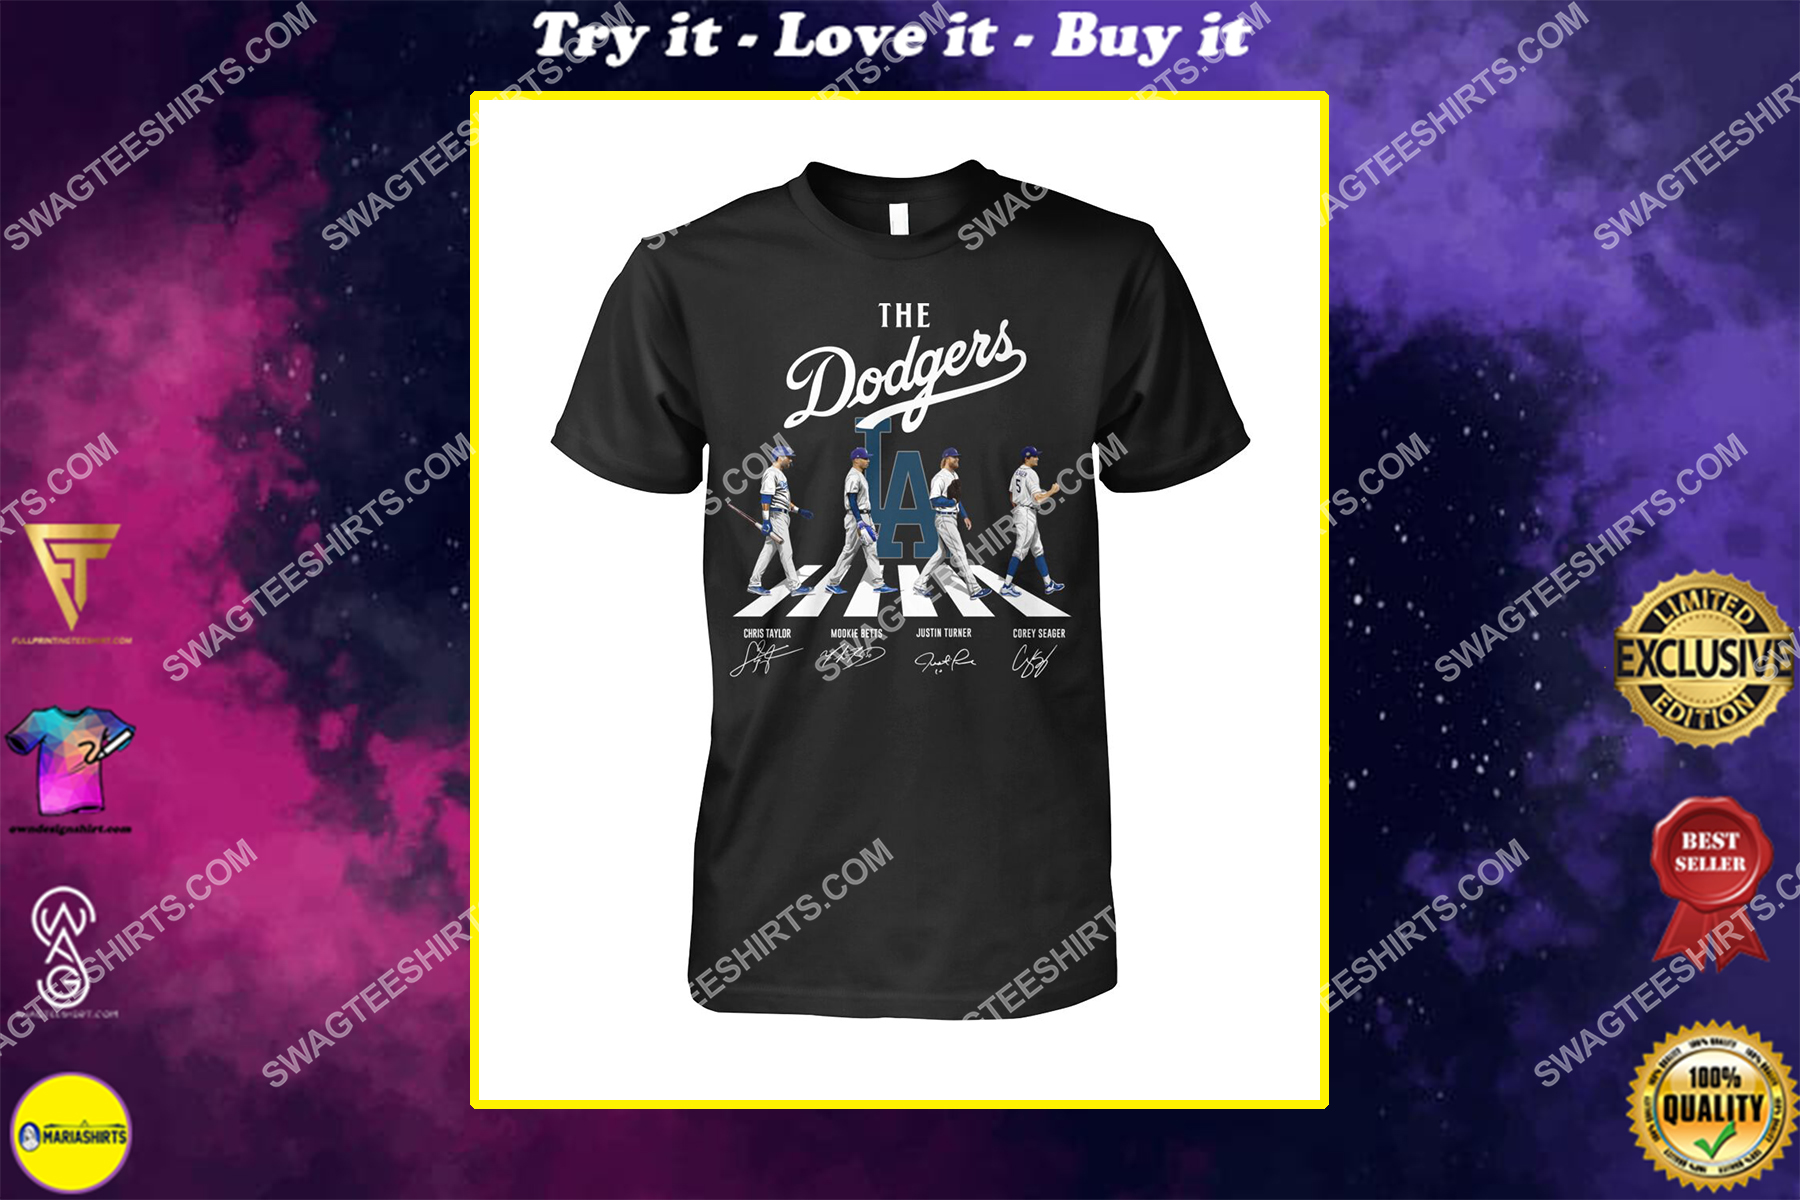 the los angeles dodgers walking abbey road signatures shirt